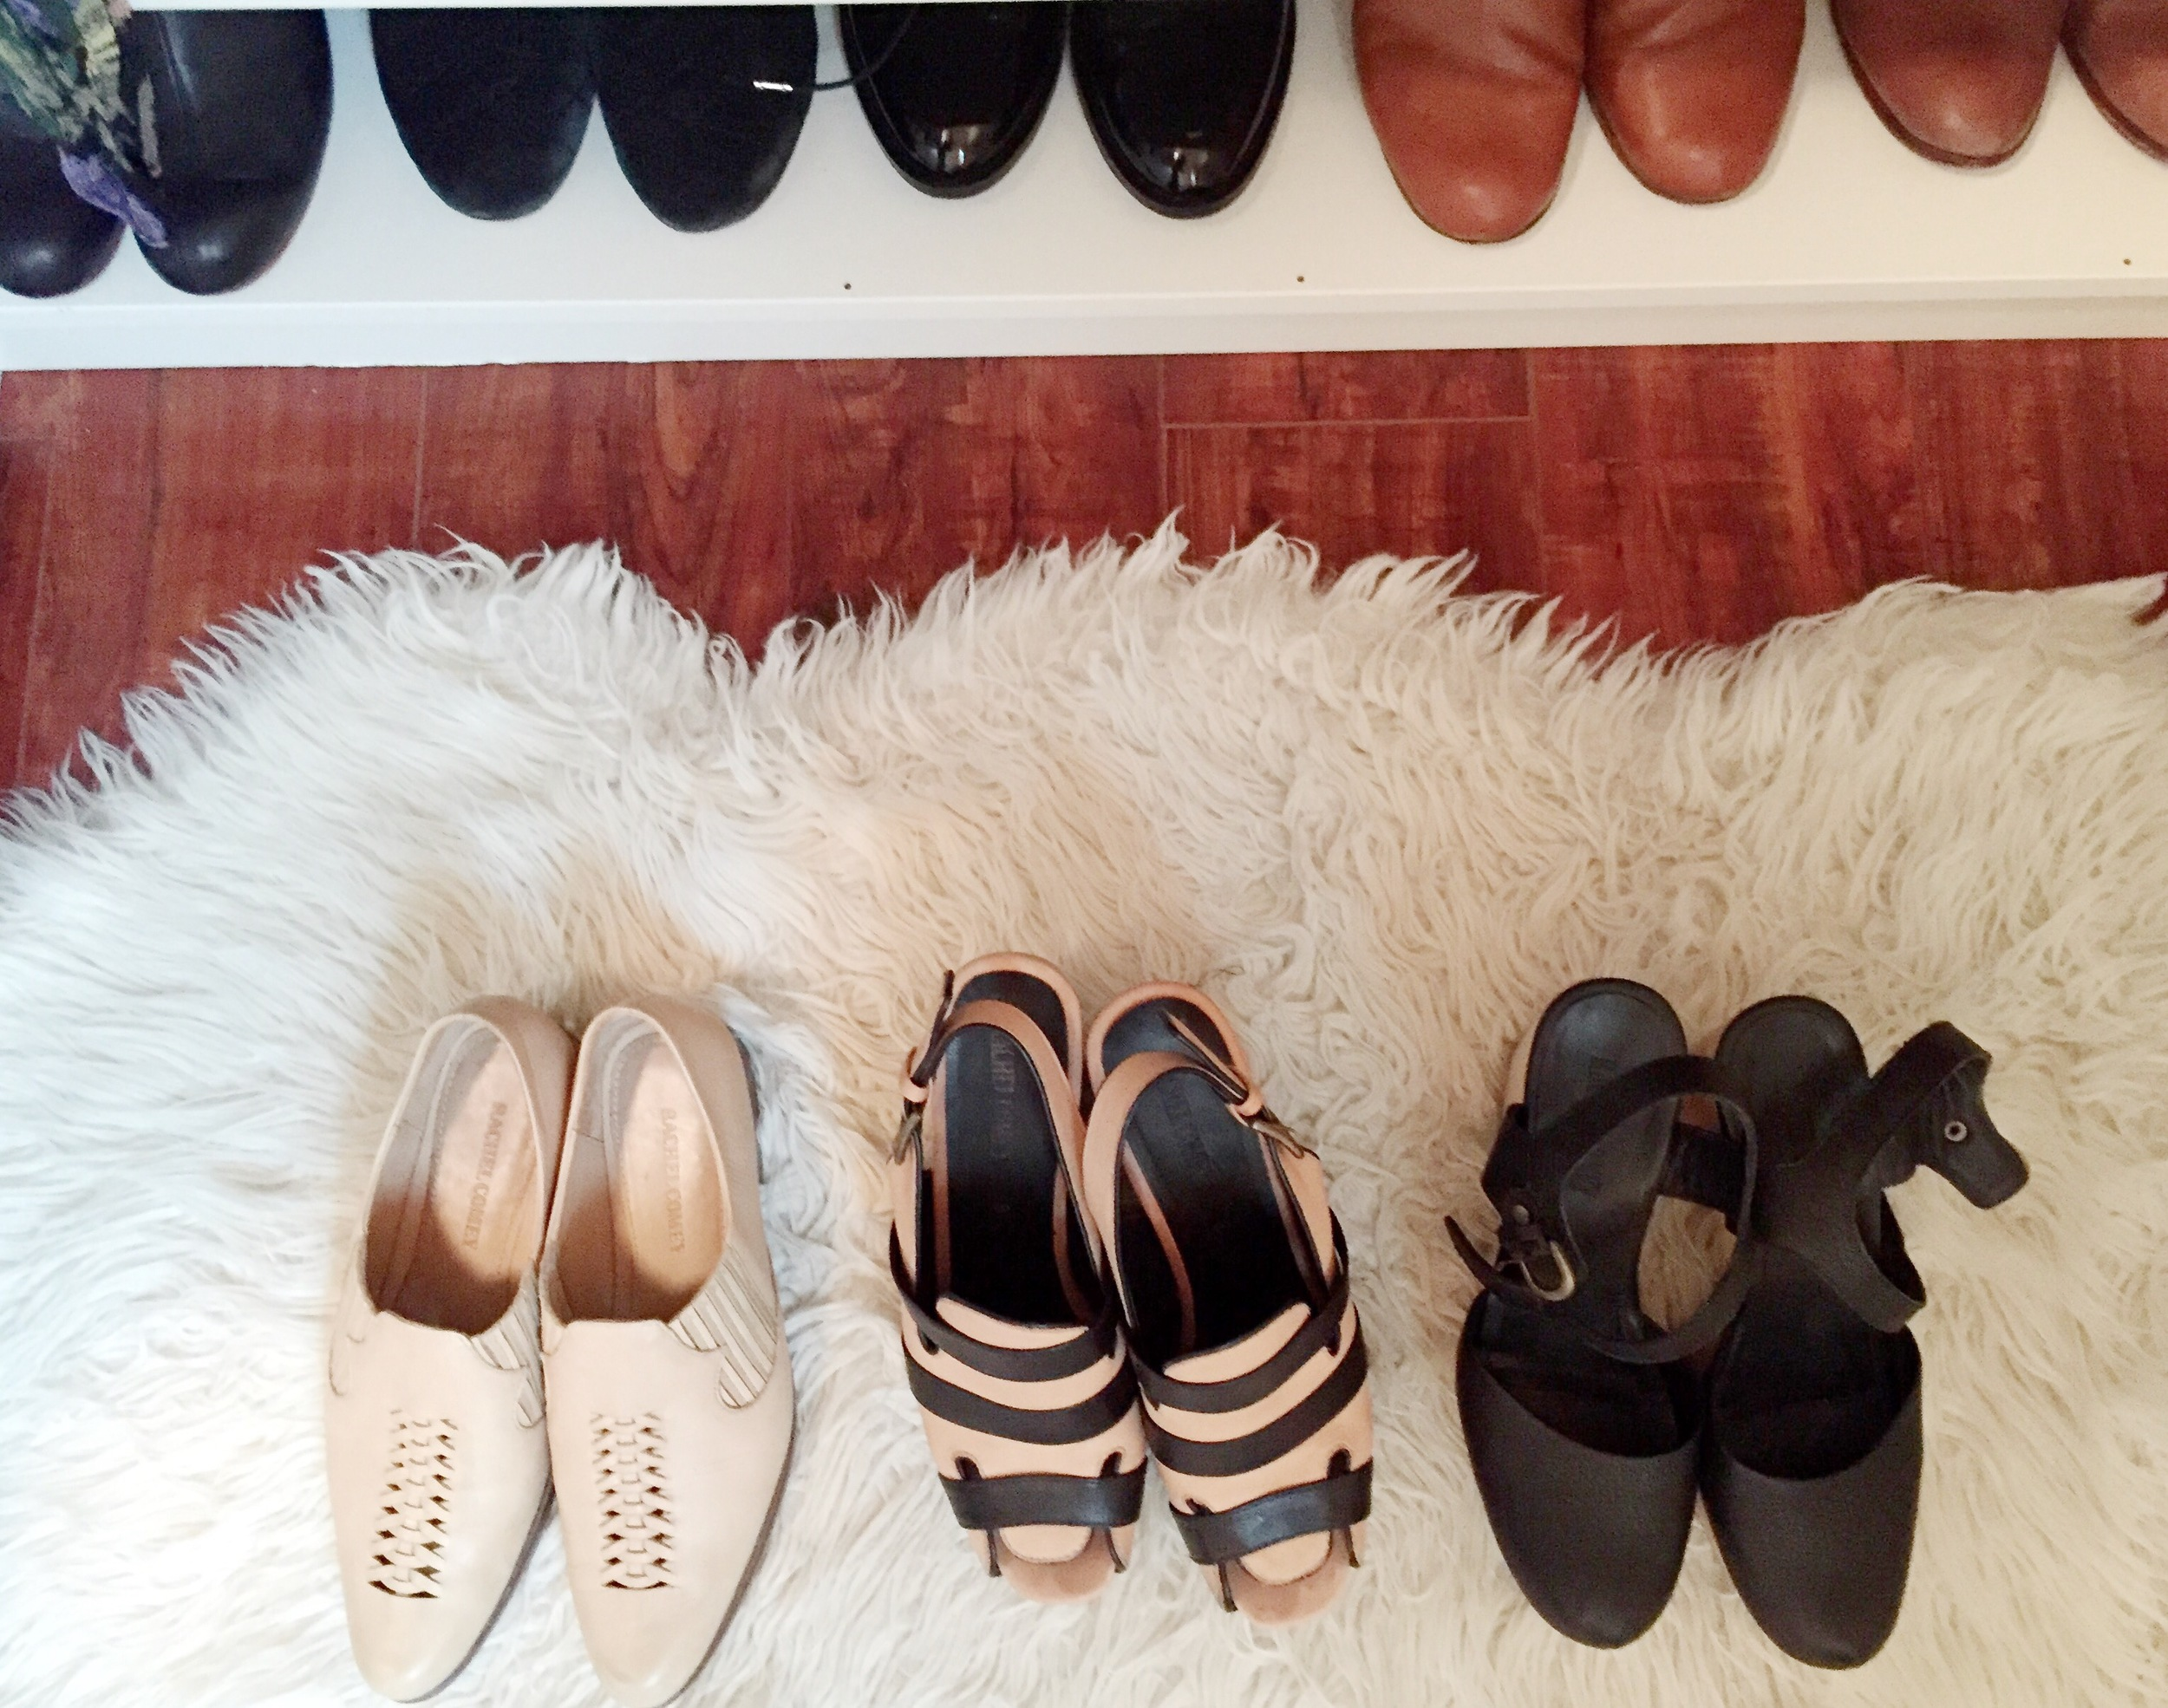 Olga's shoe collection goes on and on ...